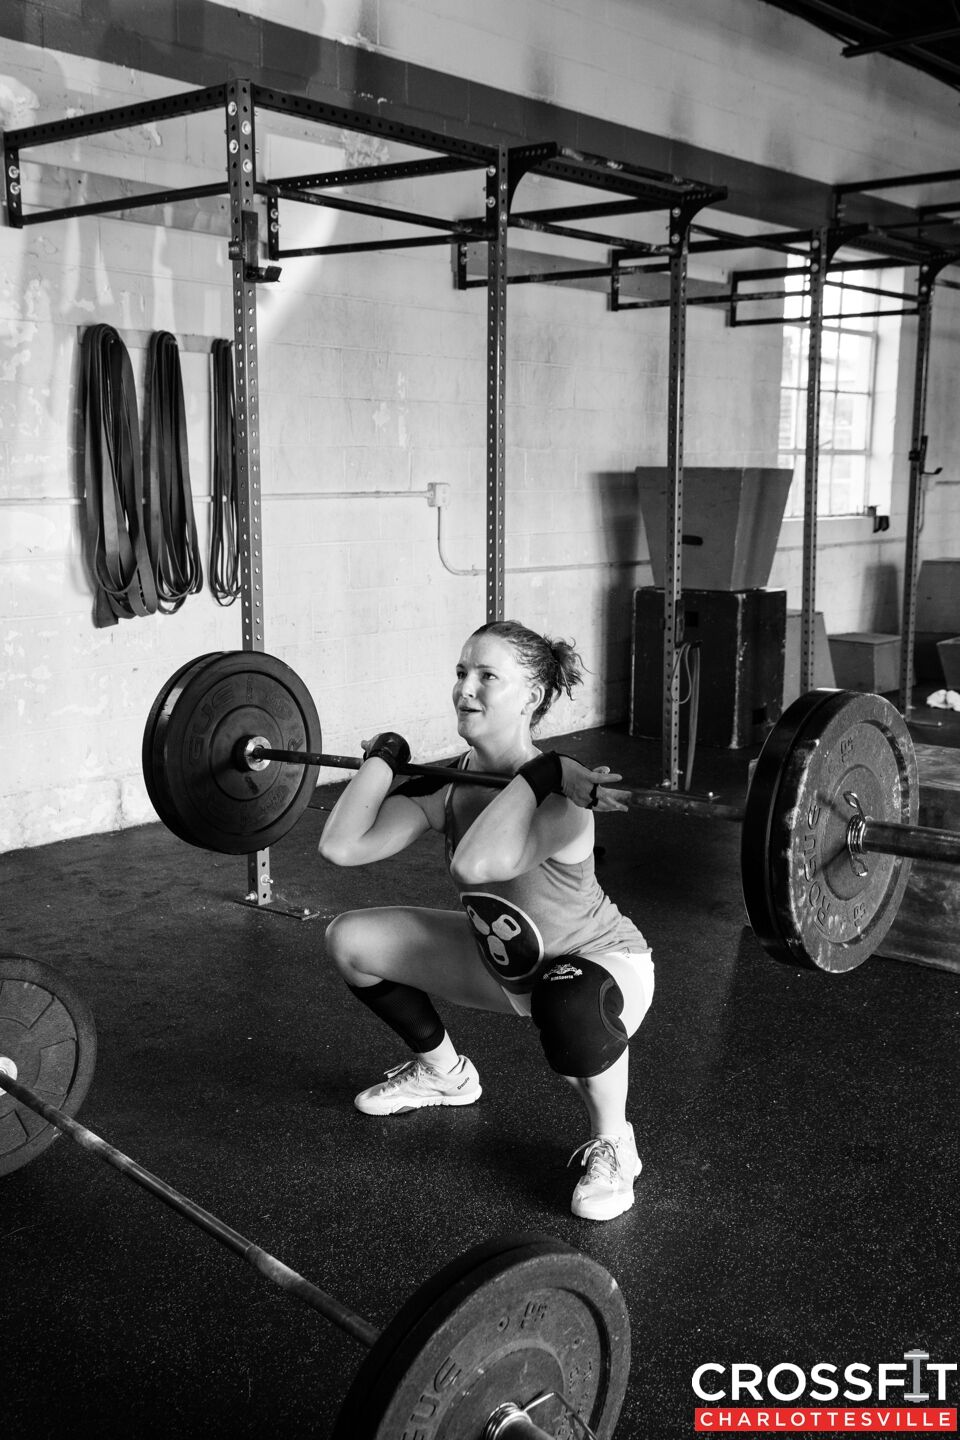 crossfit-charlottesville_0478_preview.jpeg